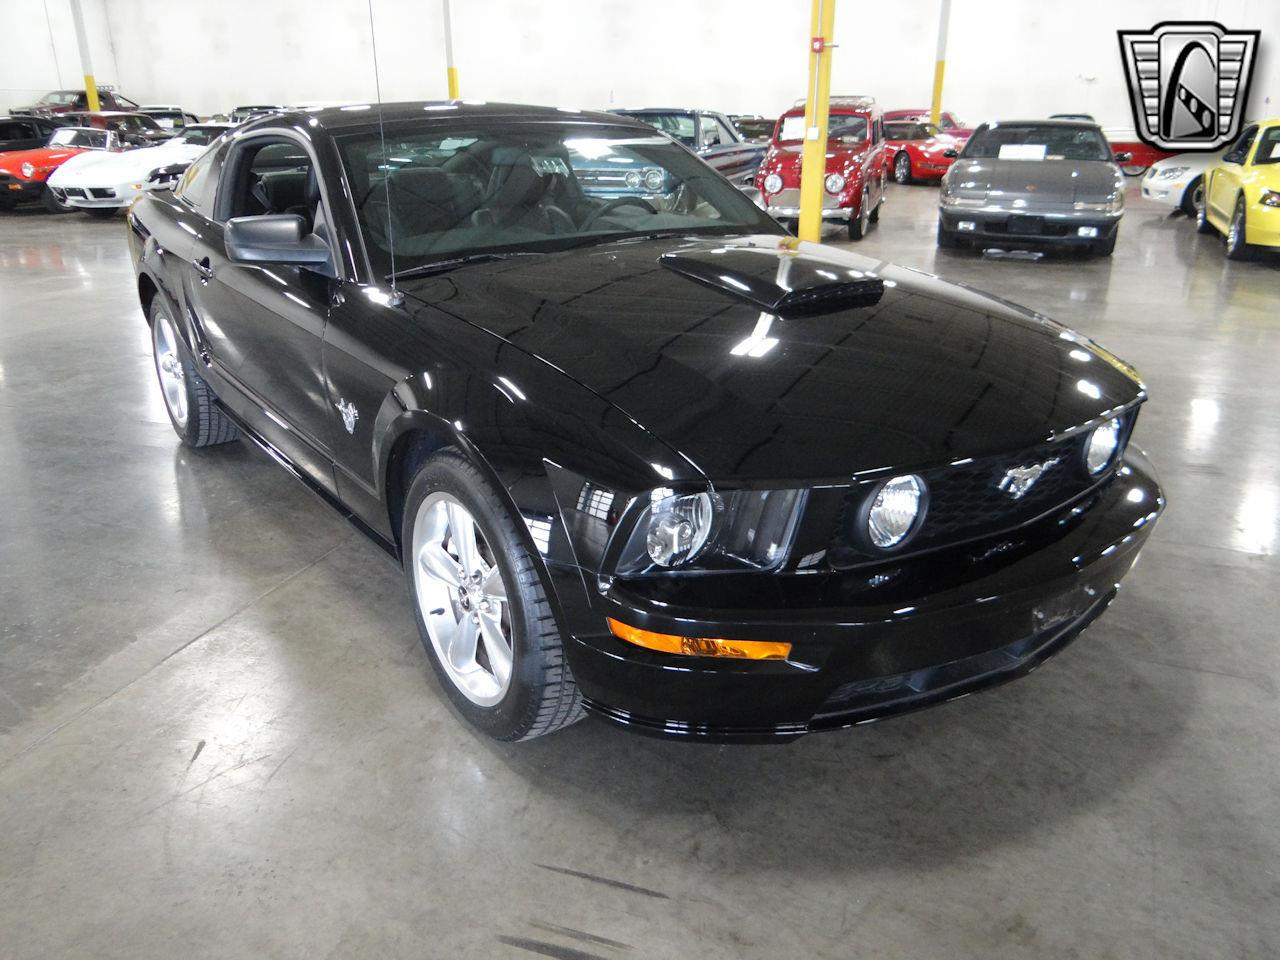 2009 Ford Mustang (CC-1340880) for sale in O'Fallon, Illinois